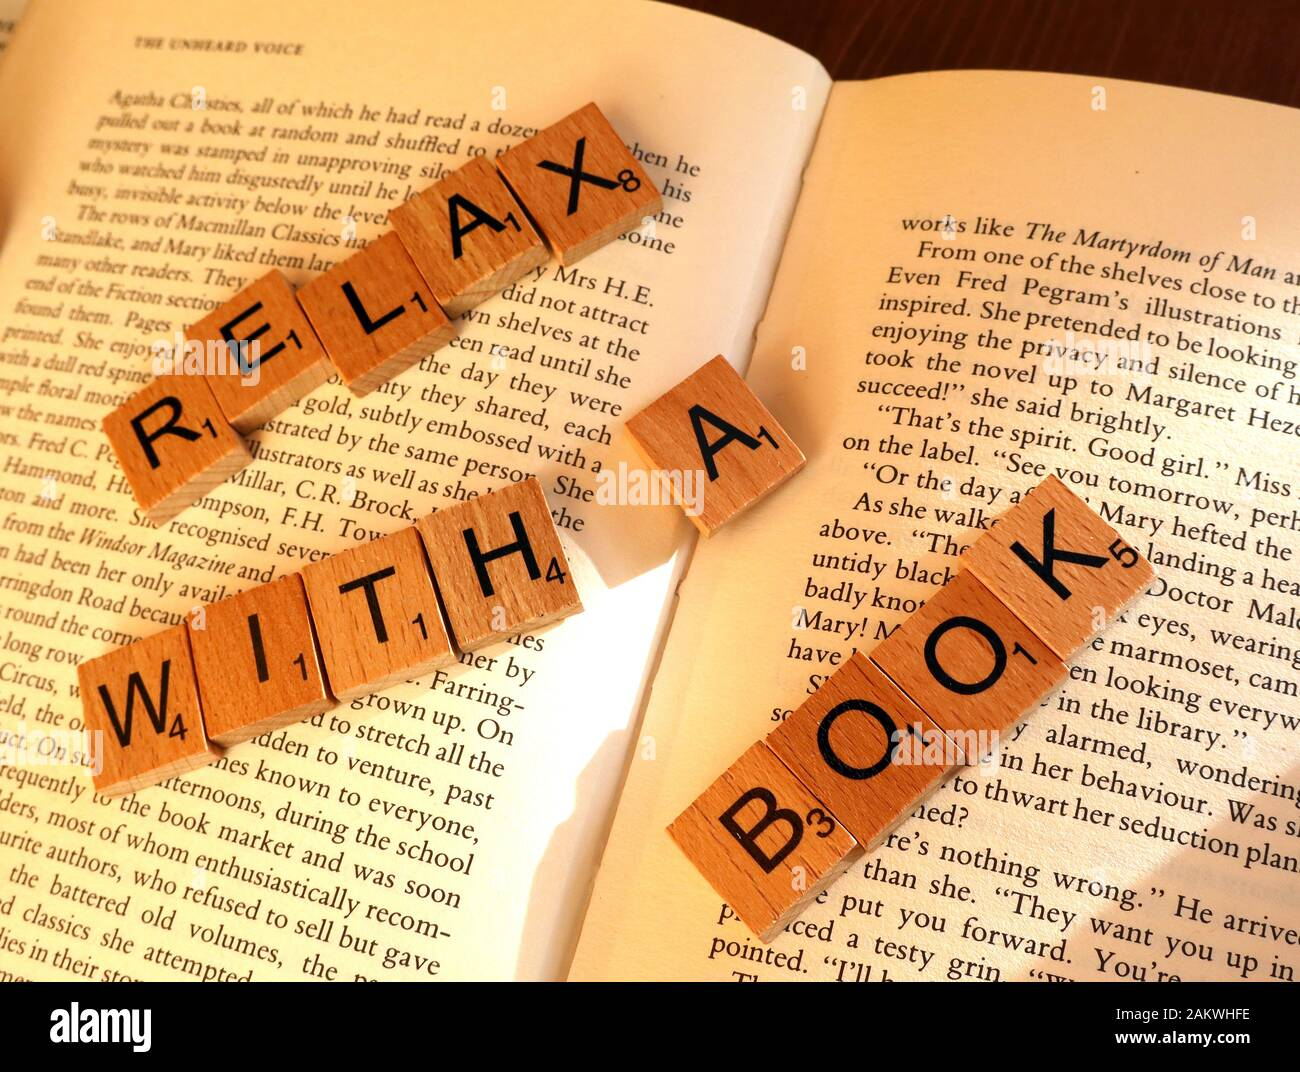 GoTonySmith,Hotpix,HotpixUK,books,book,good books,relax book,Relax,good book,promotion,reading,physical,happy,stories,story,novel,transport yourself,calming book,de-stress,de-stress with a book,reduce stress,mindful,an open book,open book